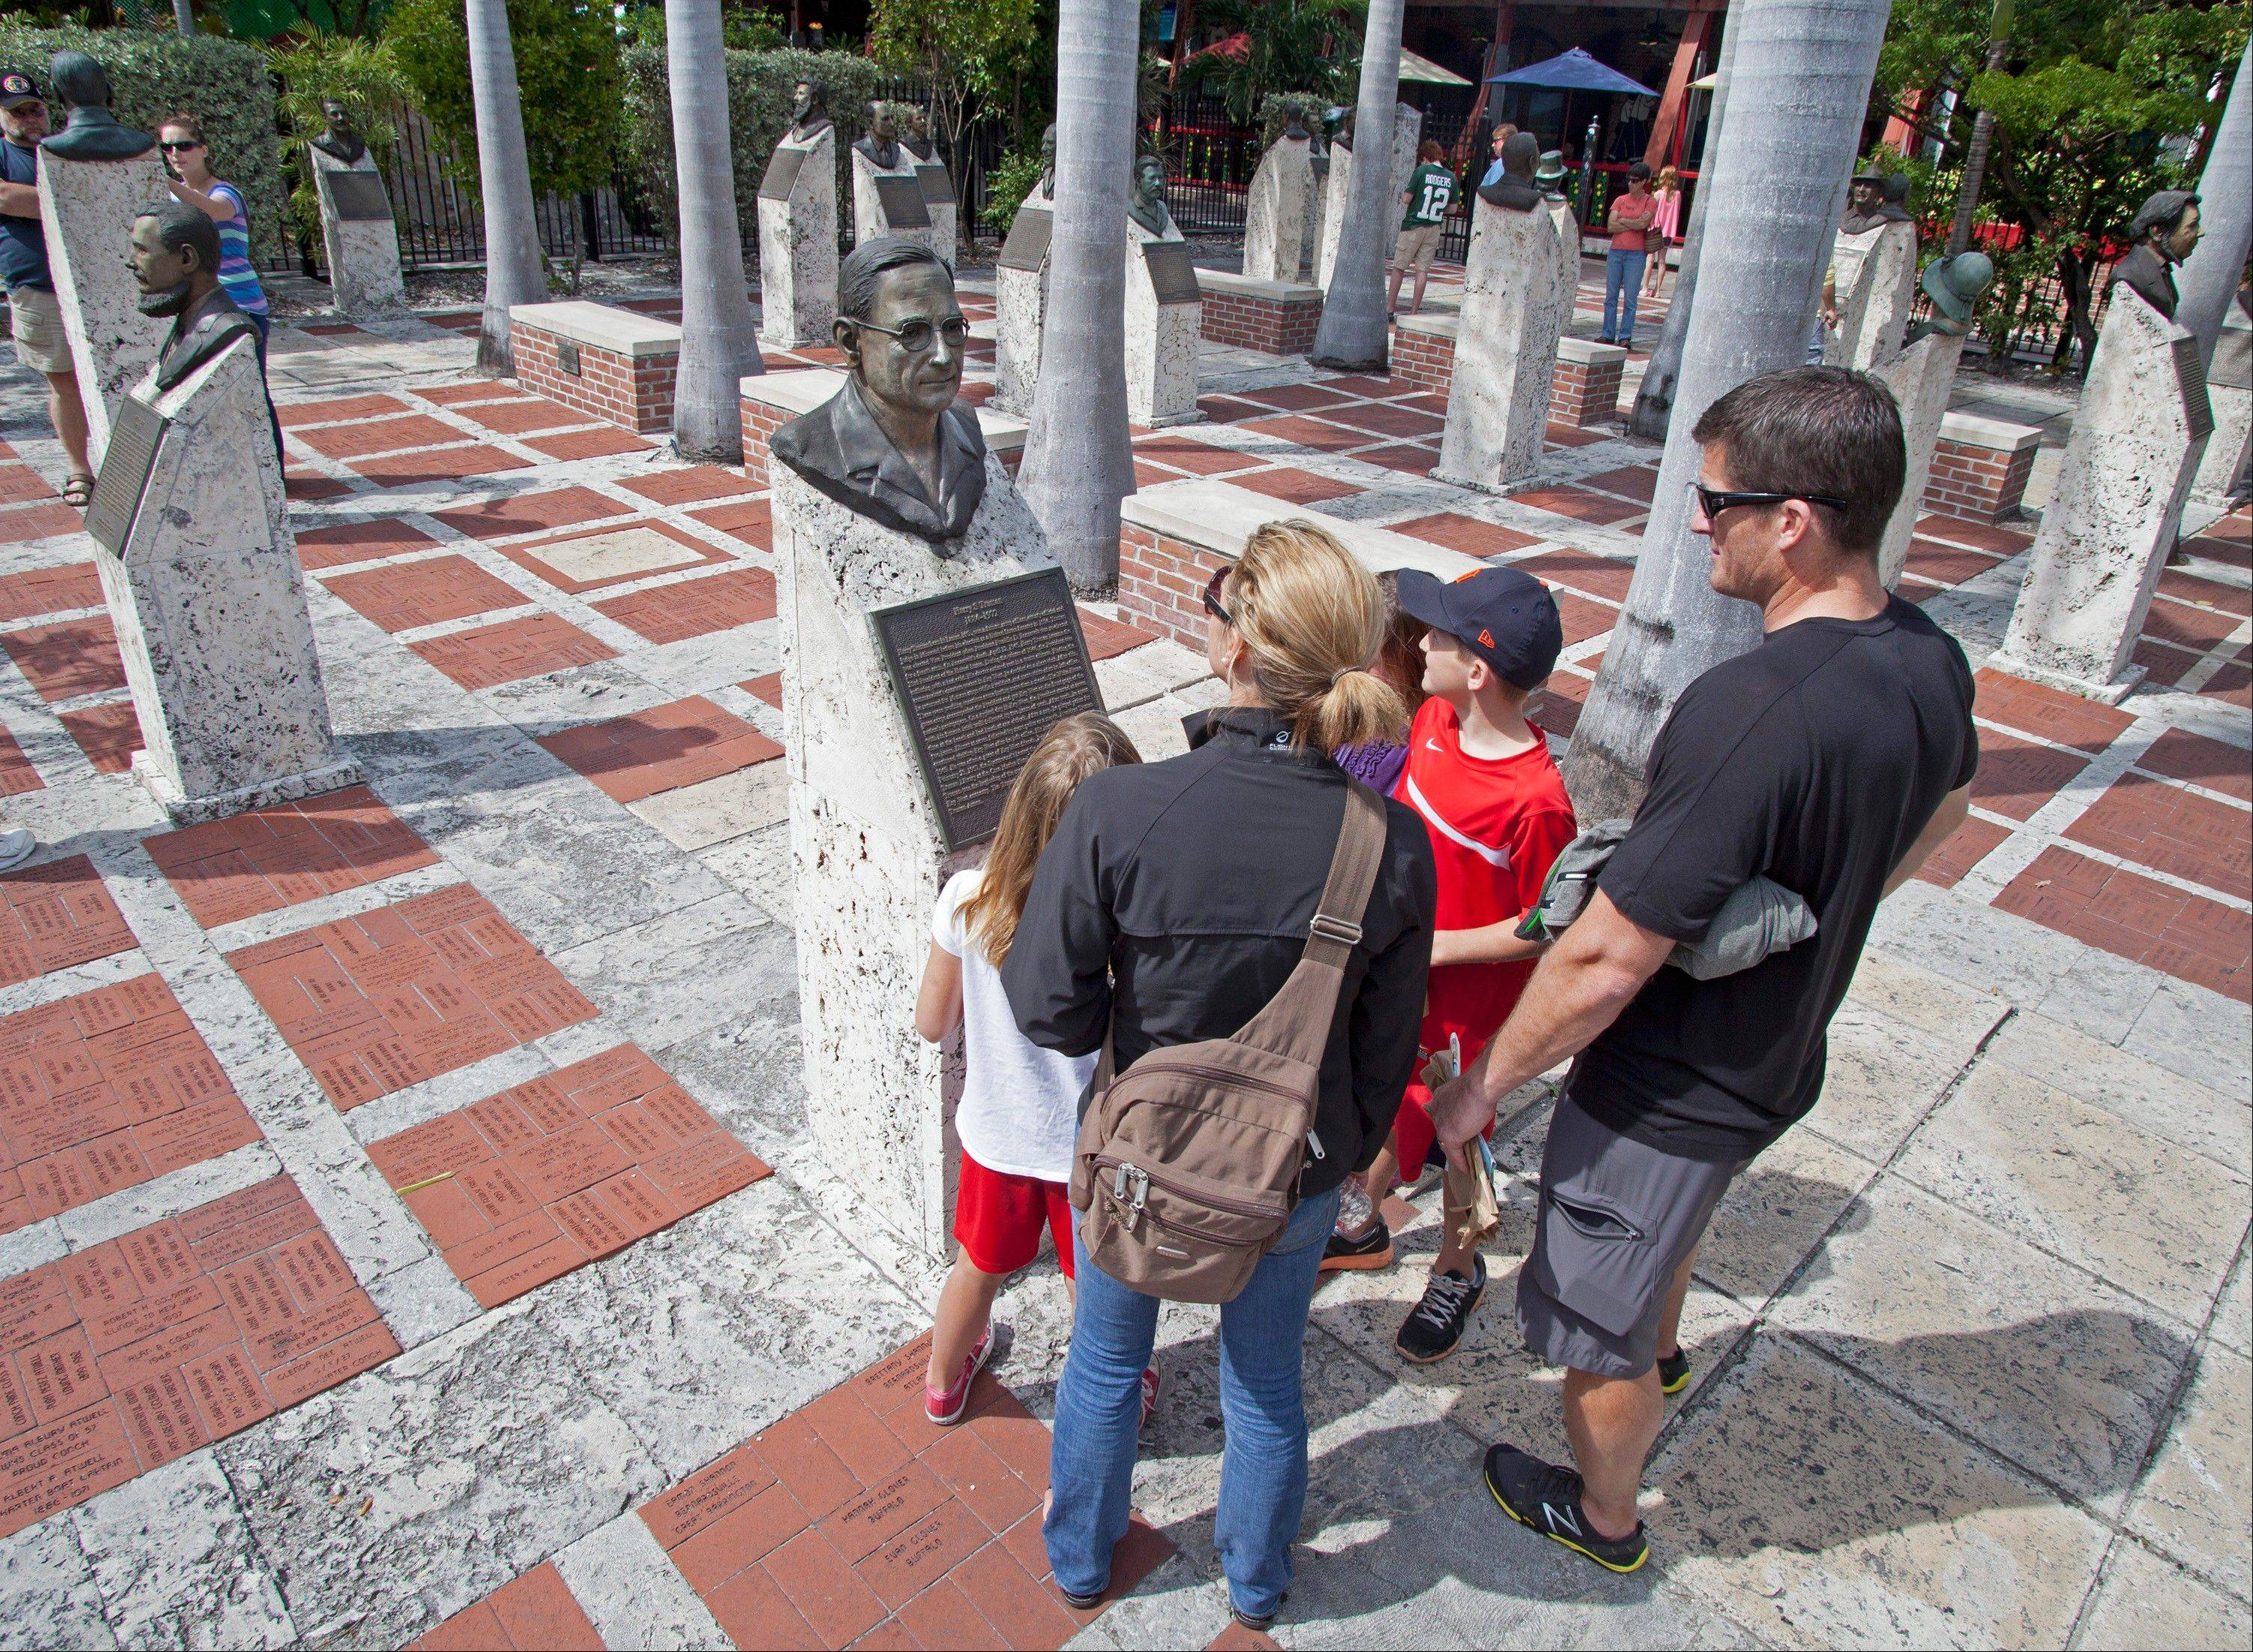 Kate and Matt Hover, and their three children examine a bronze bust of former President Harry S. Truman in the Key West Historic Memorial Sculpture Garden.